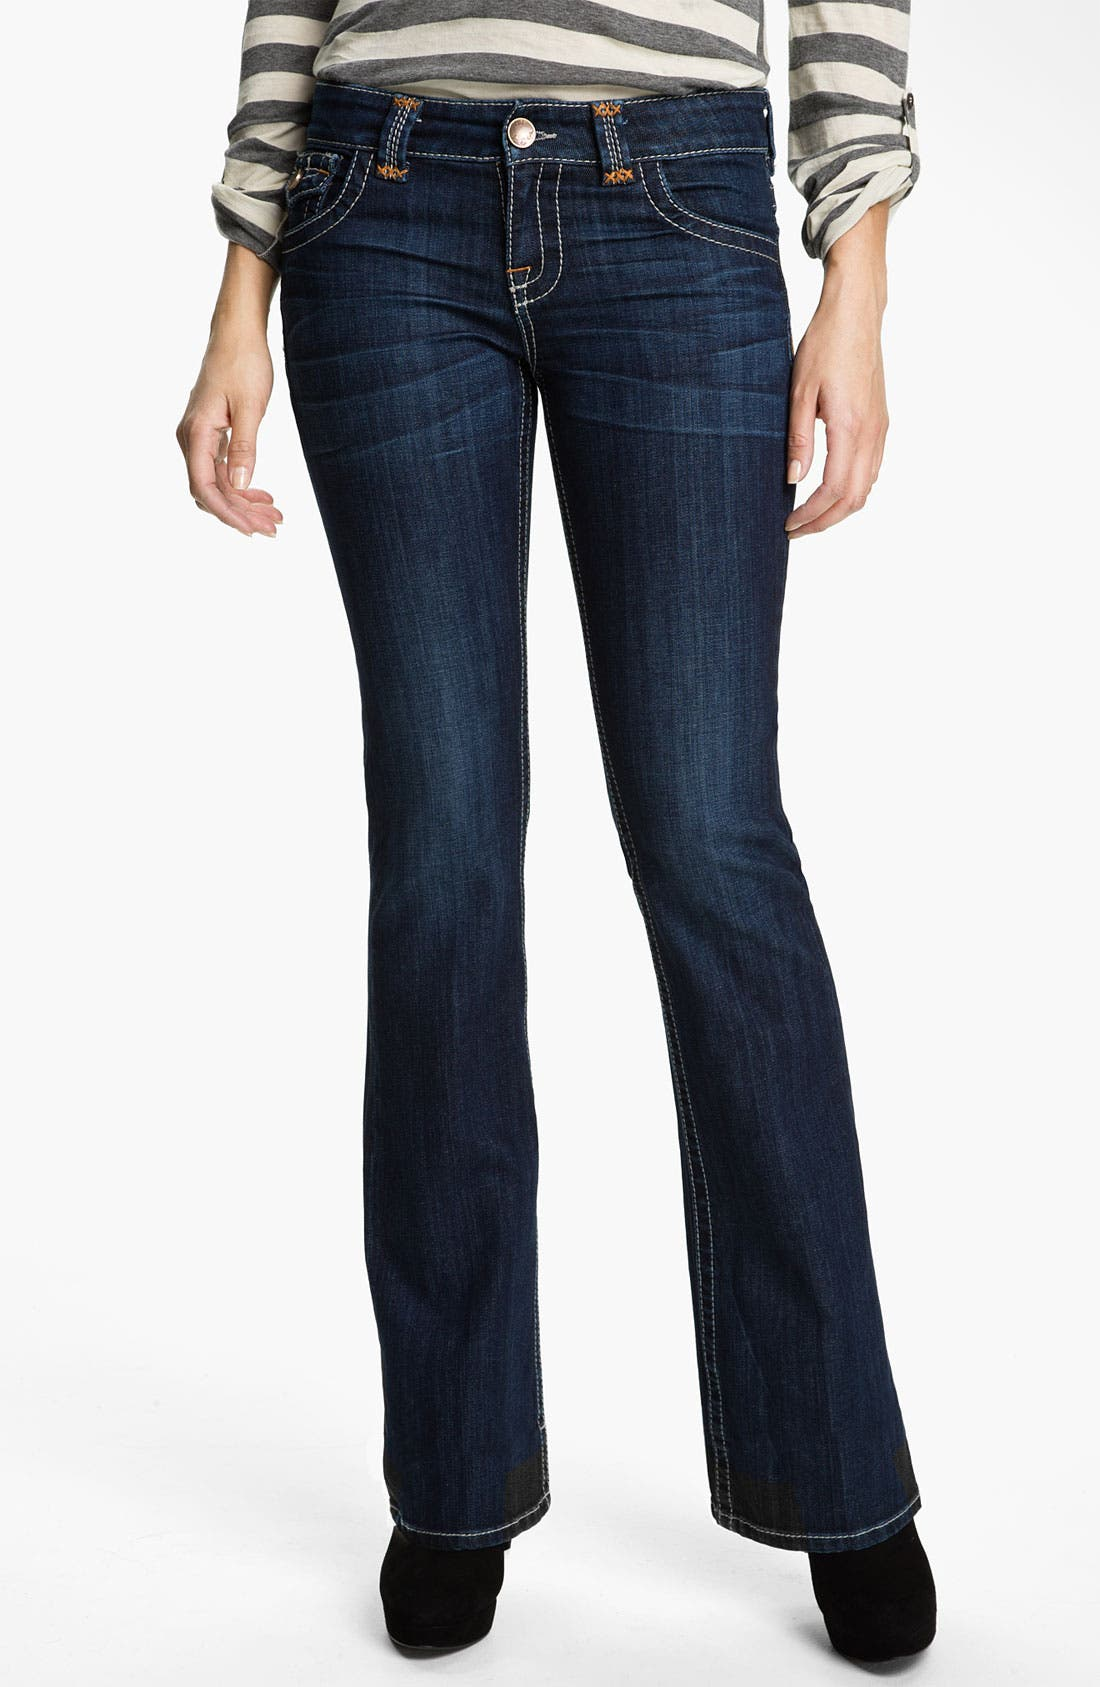 Alternate Image 1 Selected - KUT from the Kloth Heavy Stitch Bootcut Jeans